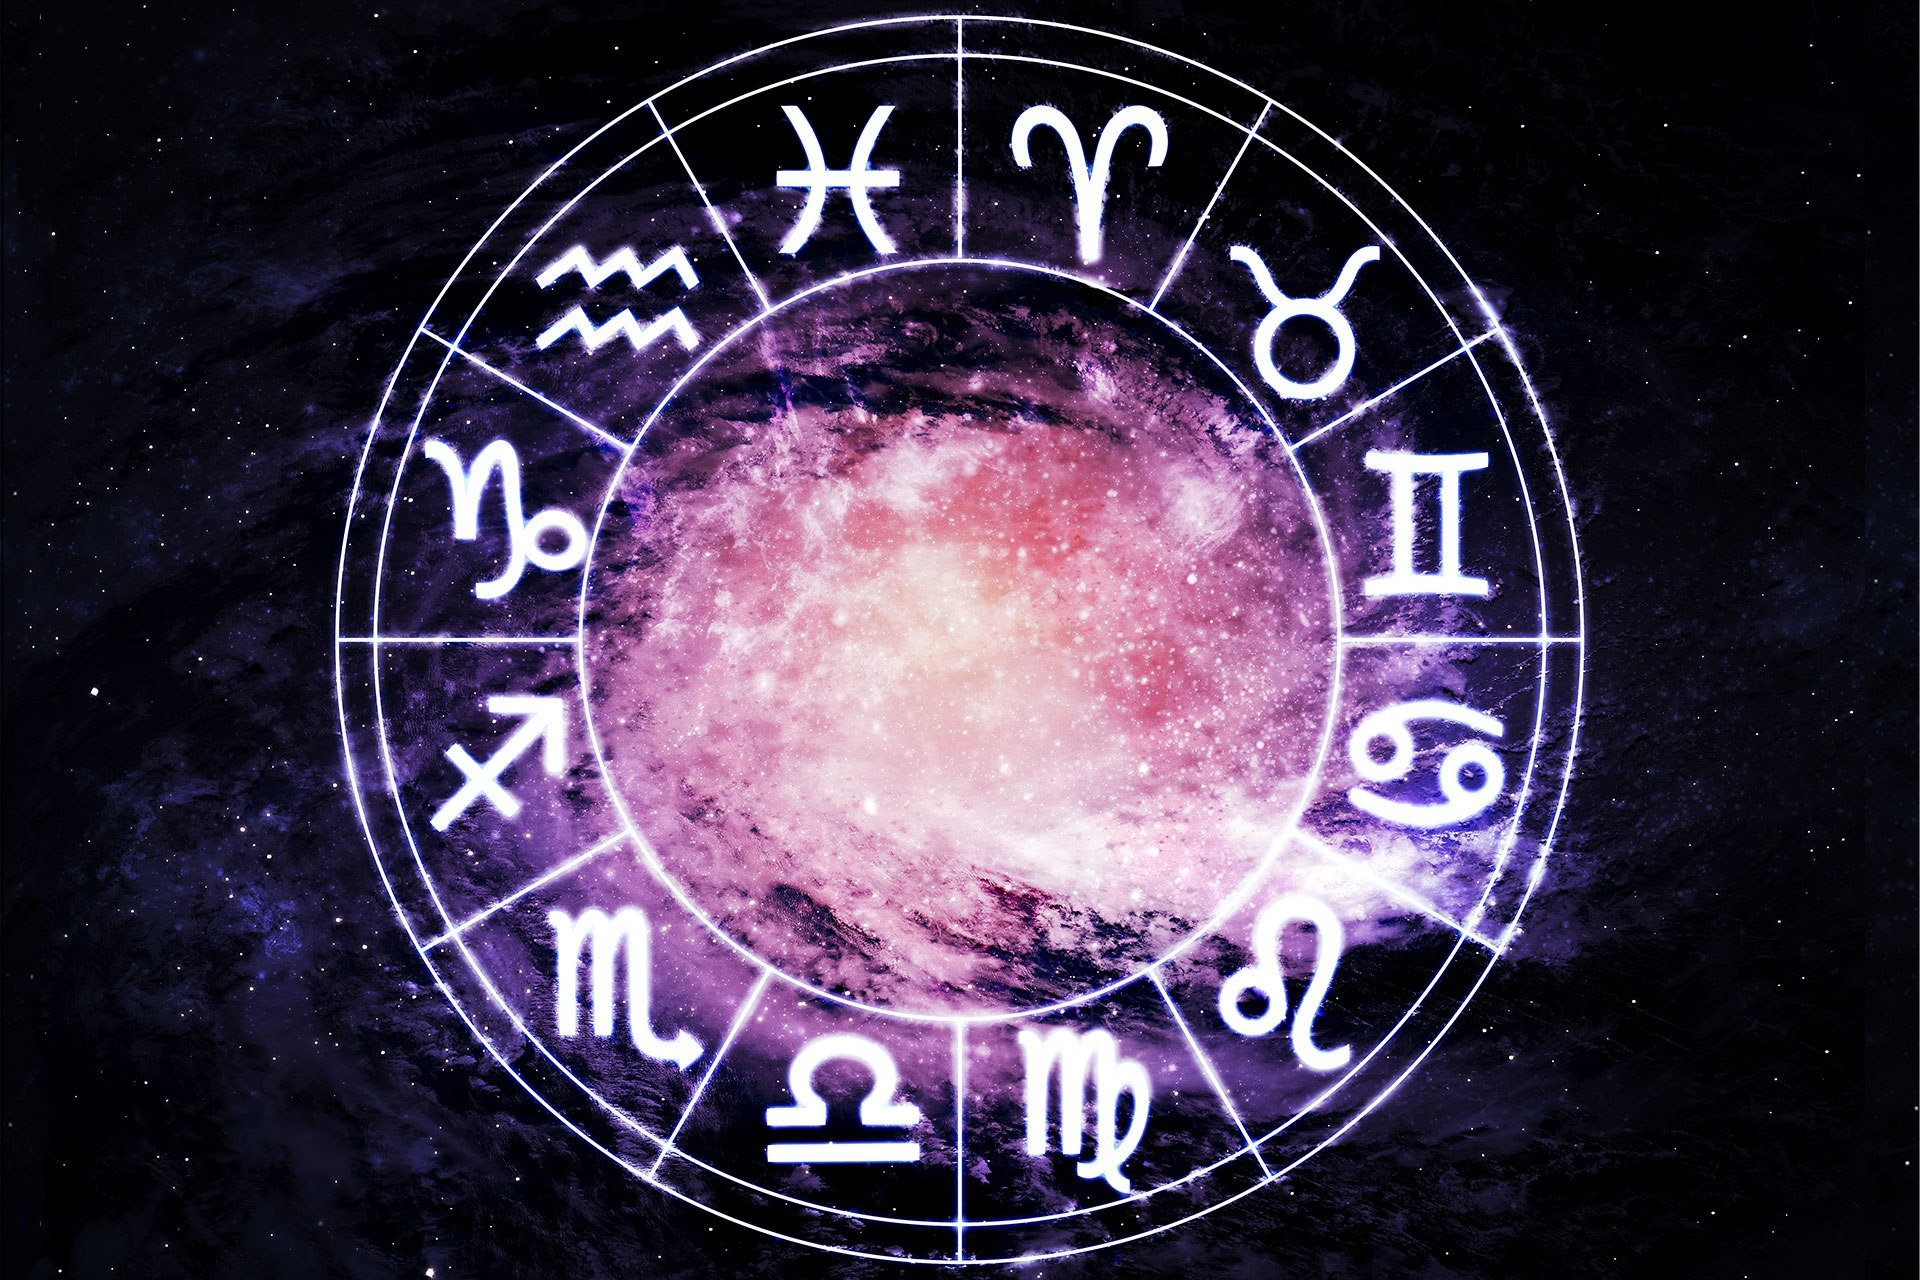 Why are we so obsessed with horoscopes?